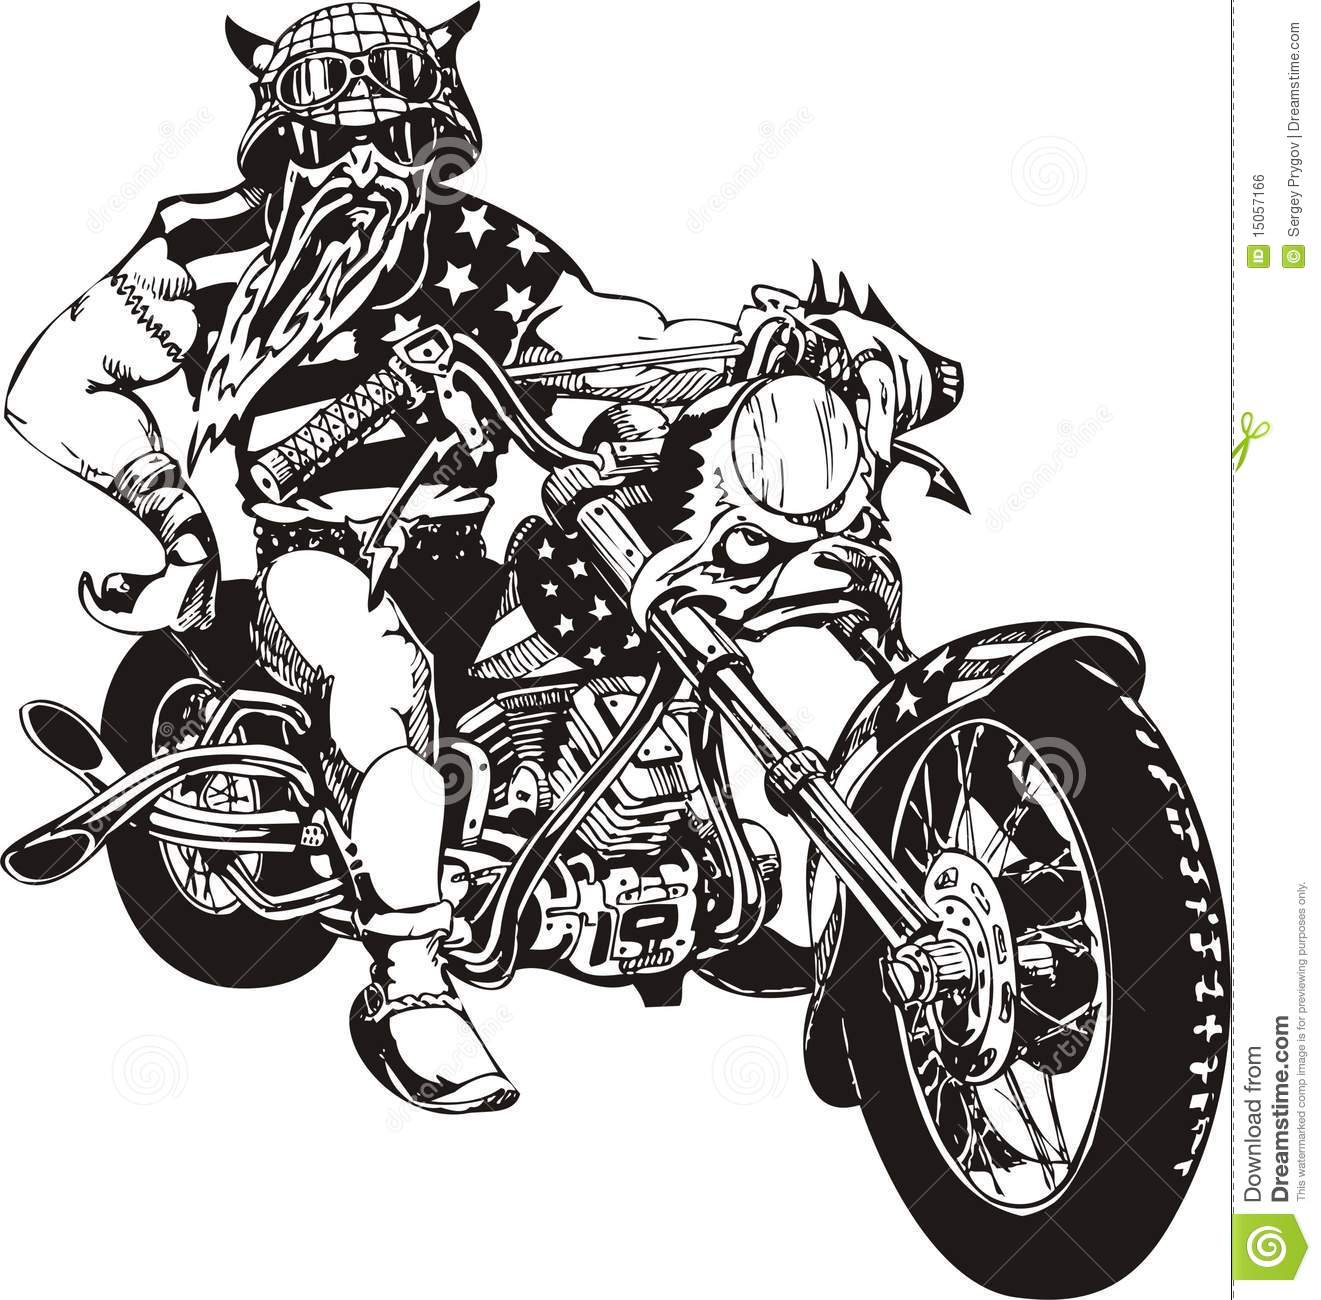 crazy biker  royalty free stock image